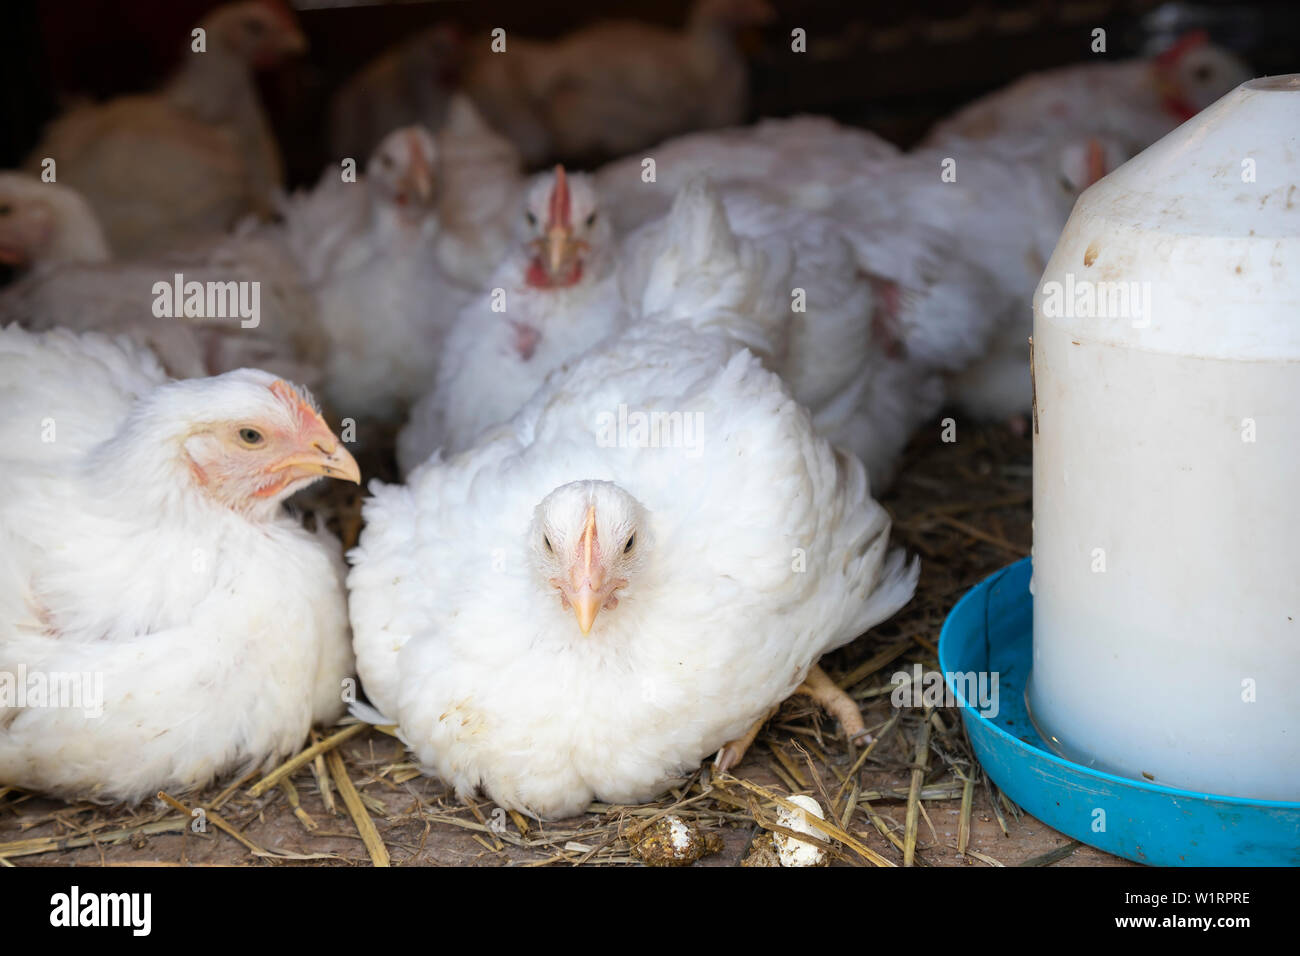 Rooster In Cage Stock Photos & Rooster In Cage Stock Images - Alamy